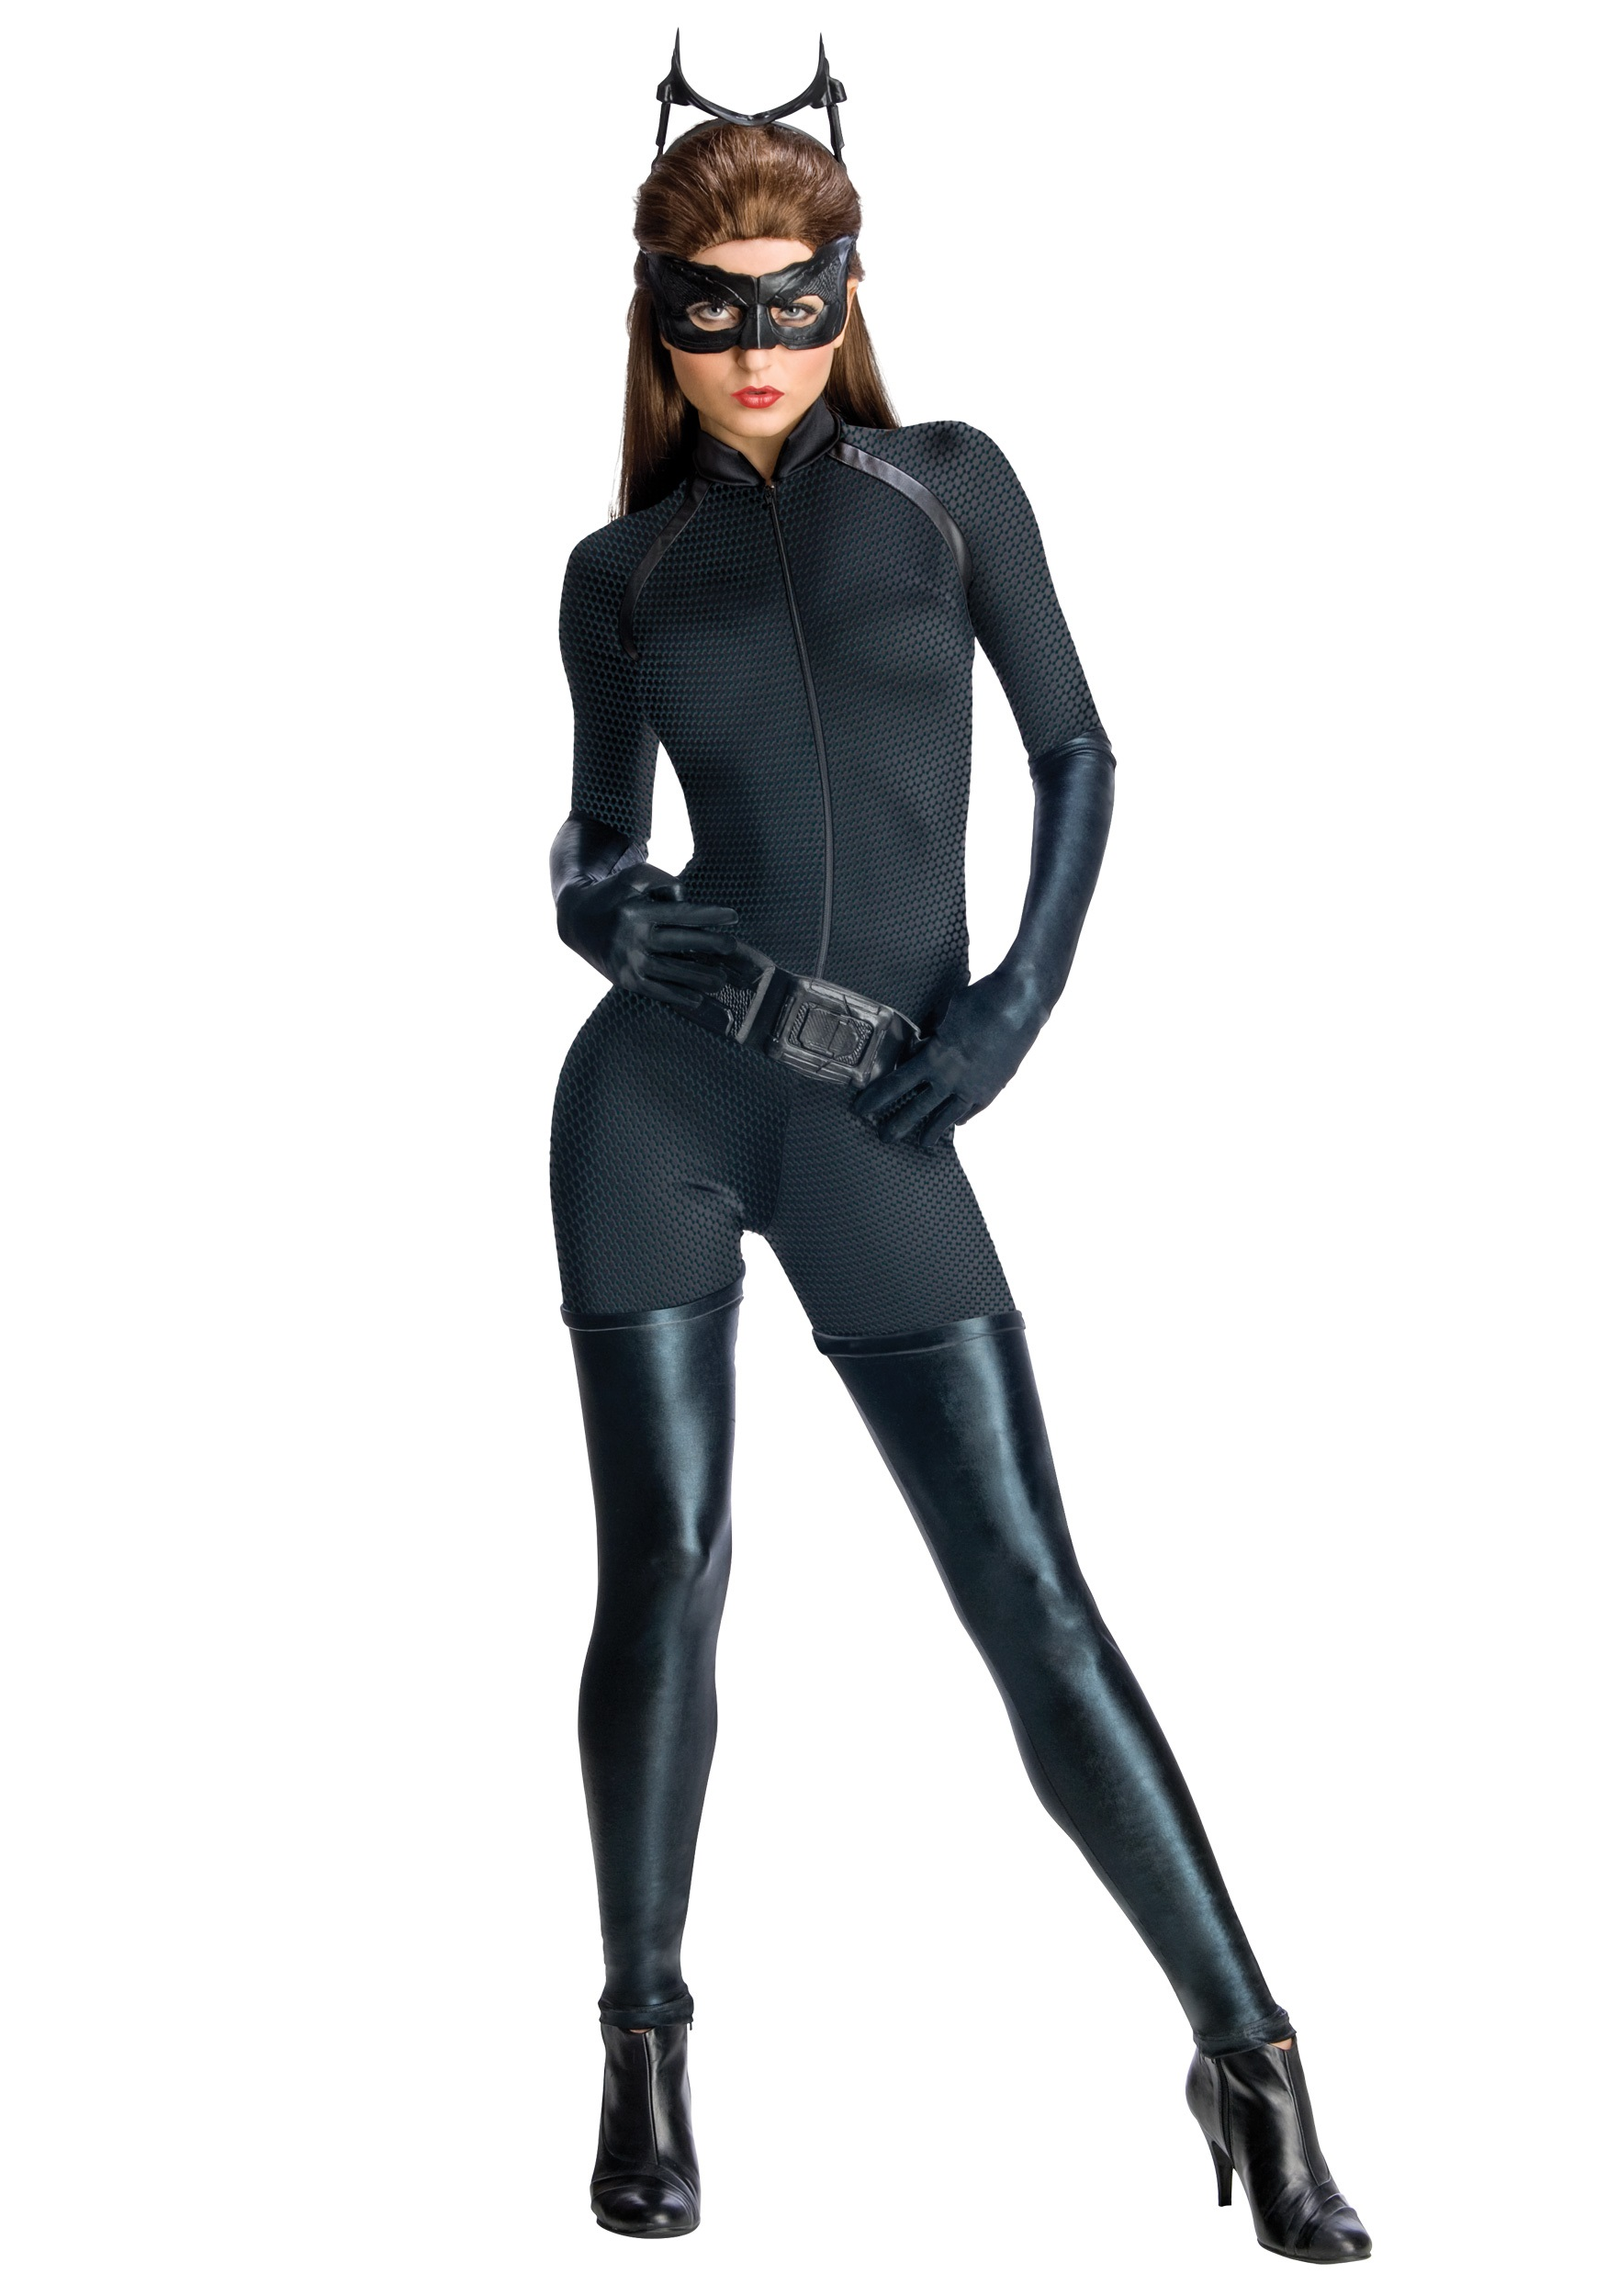 https://images.halloweencostumes.com/products/12125/1-1/deluxe-dark-knight-catwoman-costume.jpg